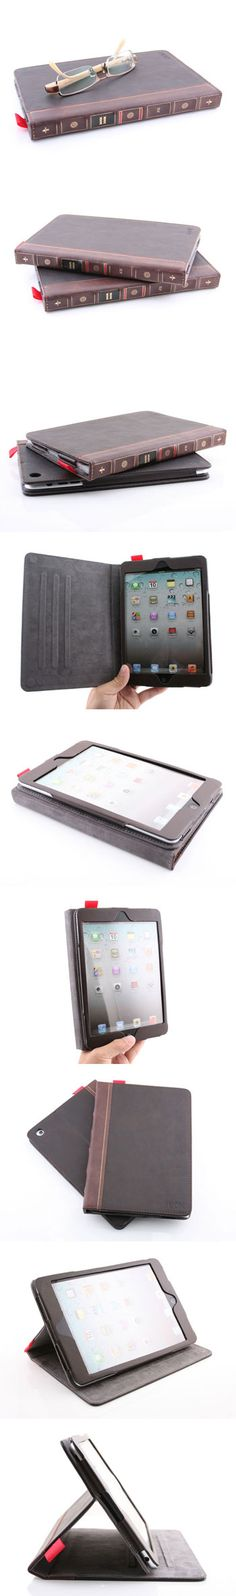 Old-world Book Case for iPad mini  http://www.usbgeek.com/products/book-case-for-ipad-mini